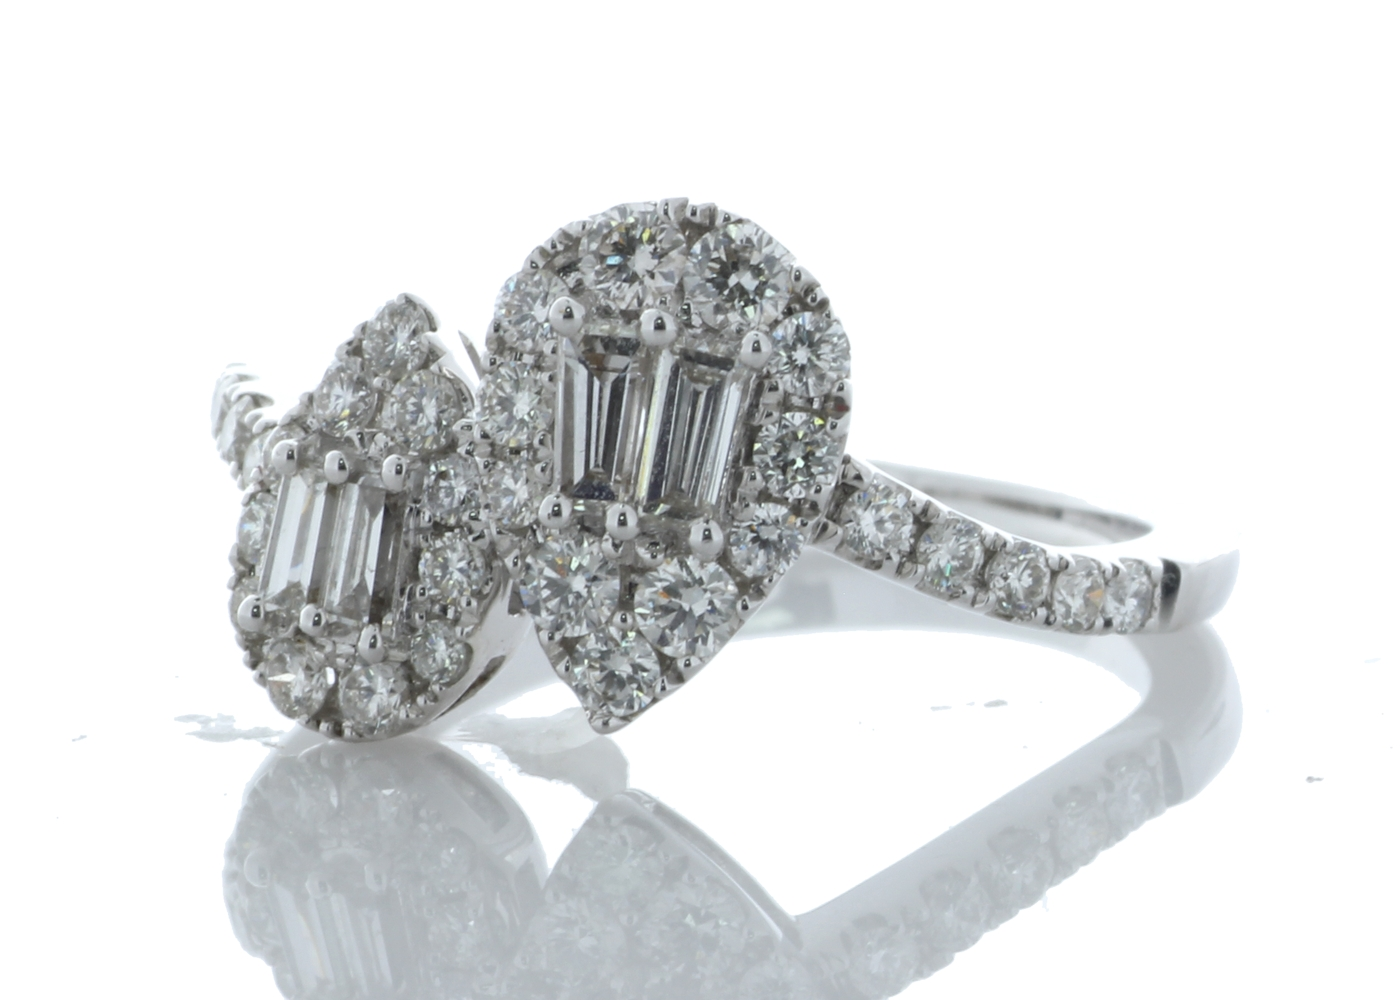 18k White Gold Double Pear Shape Cluster Diamond Ring 0.83 Carats - Image 2 of 5